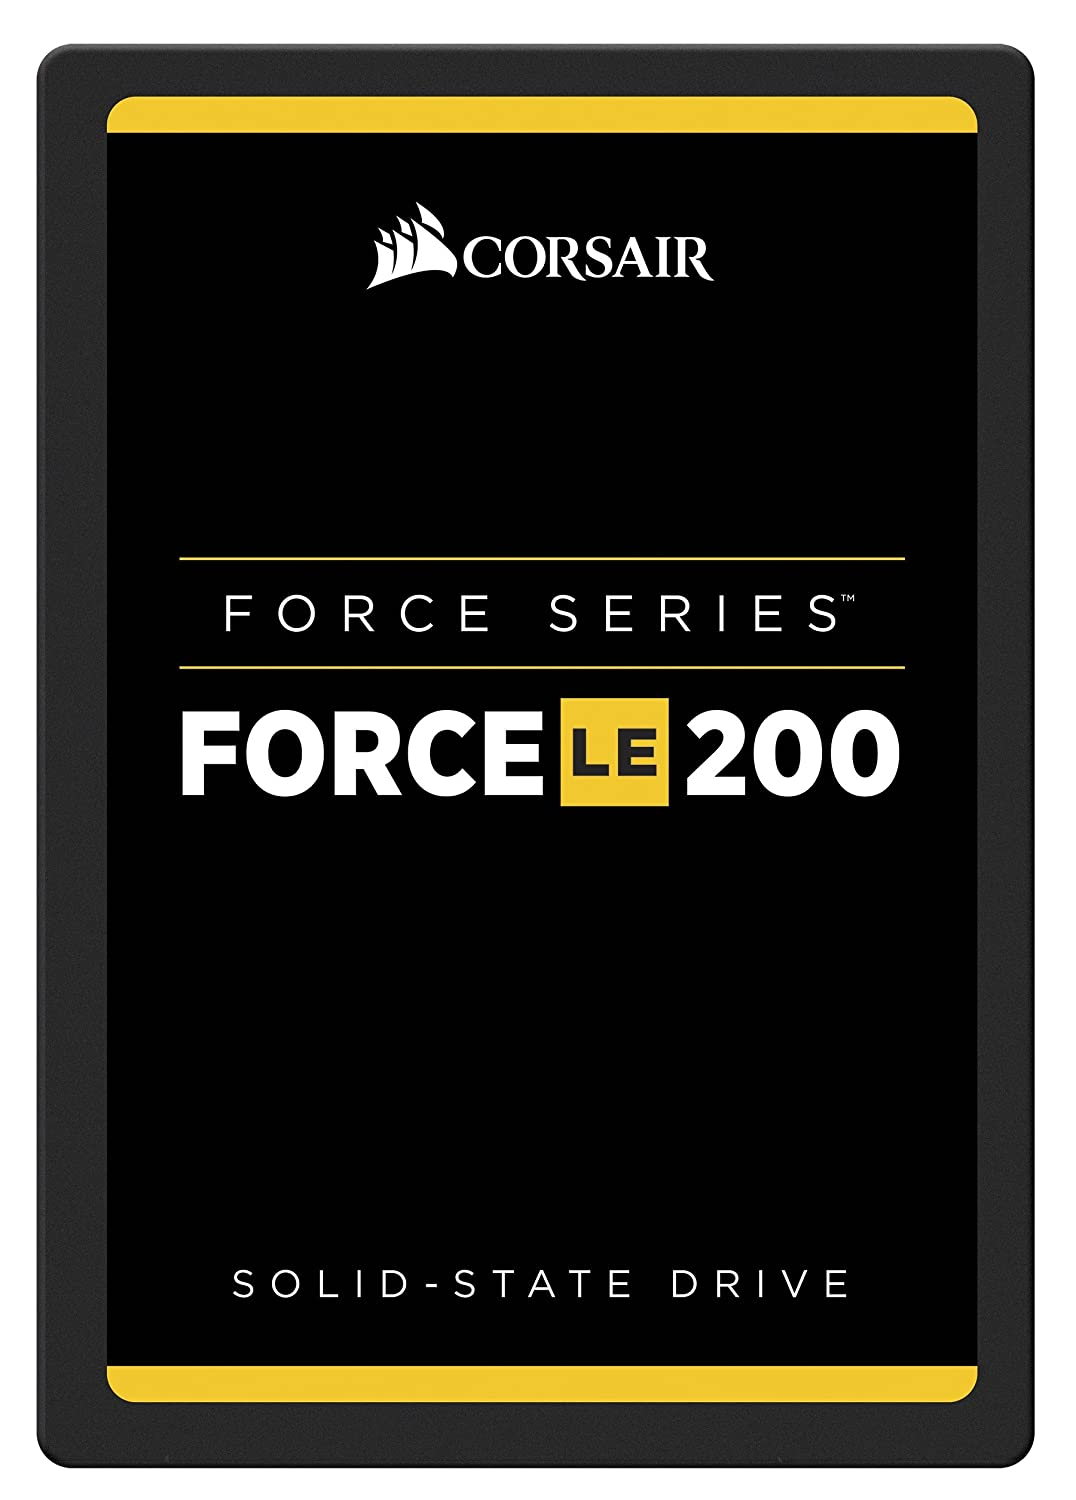 Force Series™ LE200 480GB